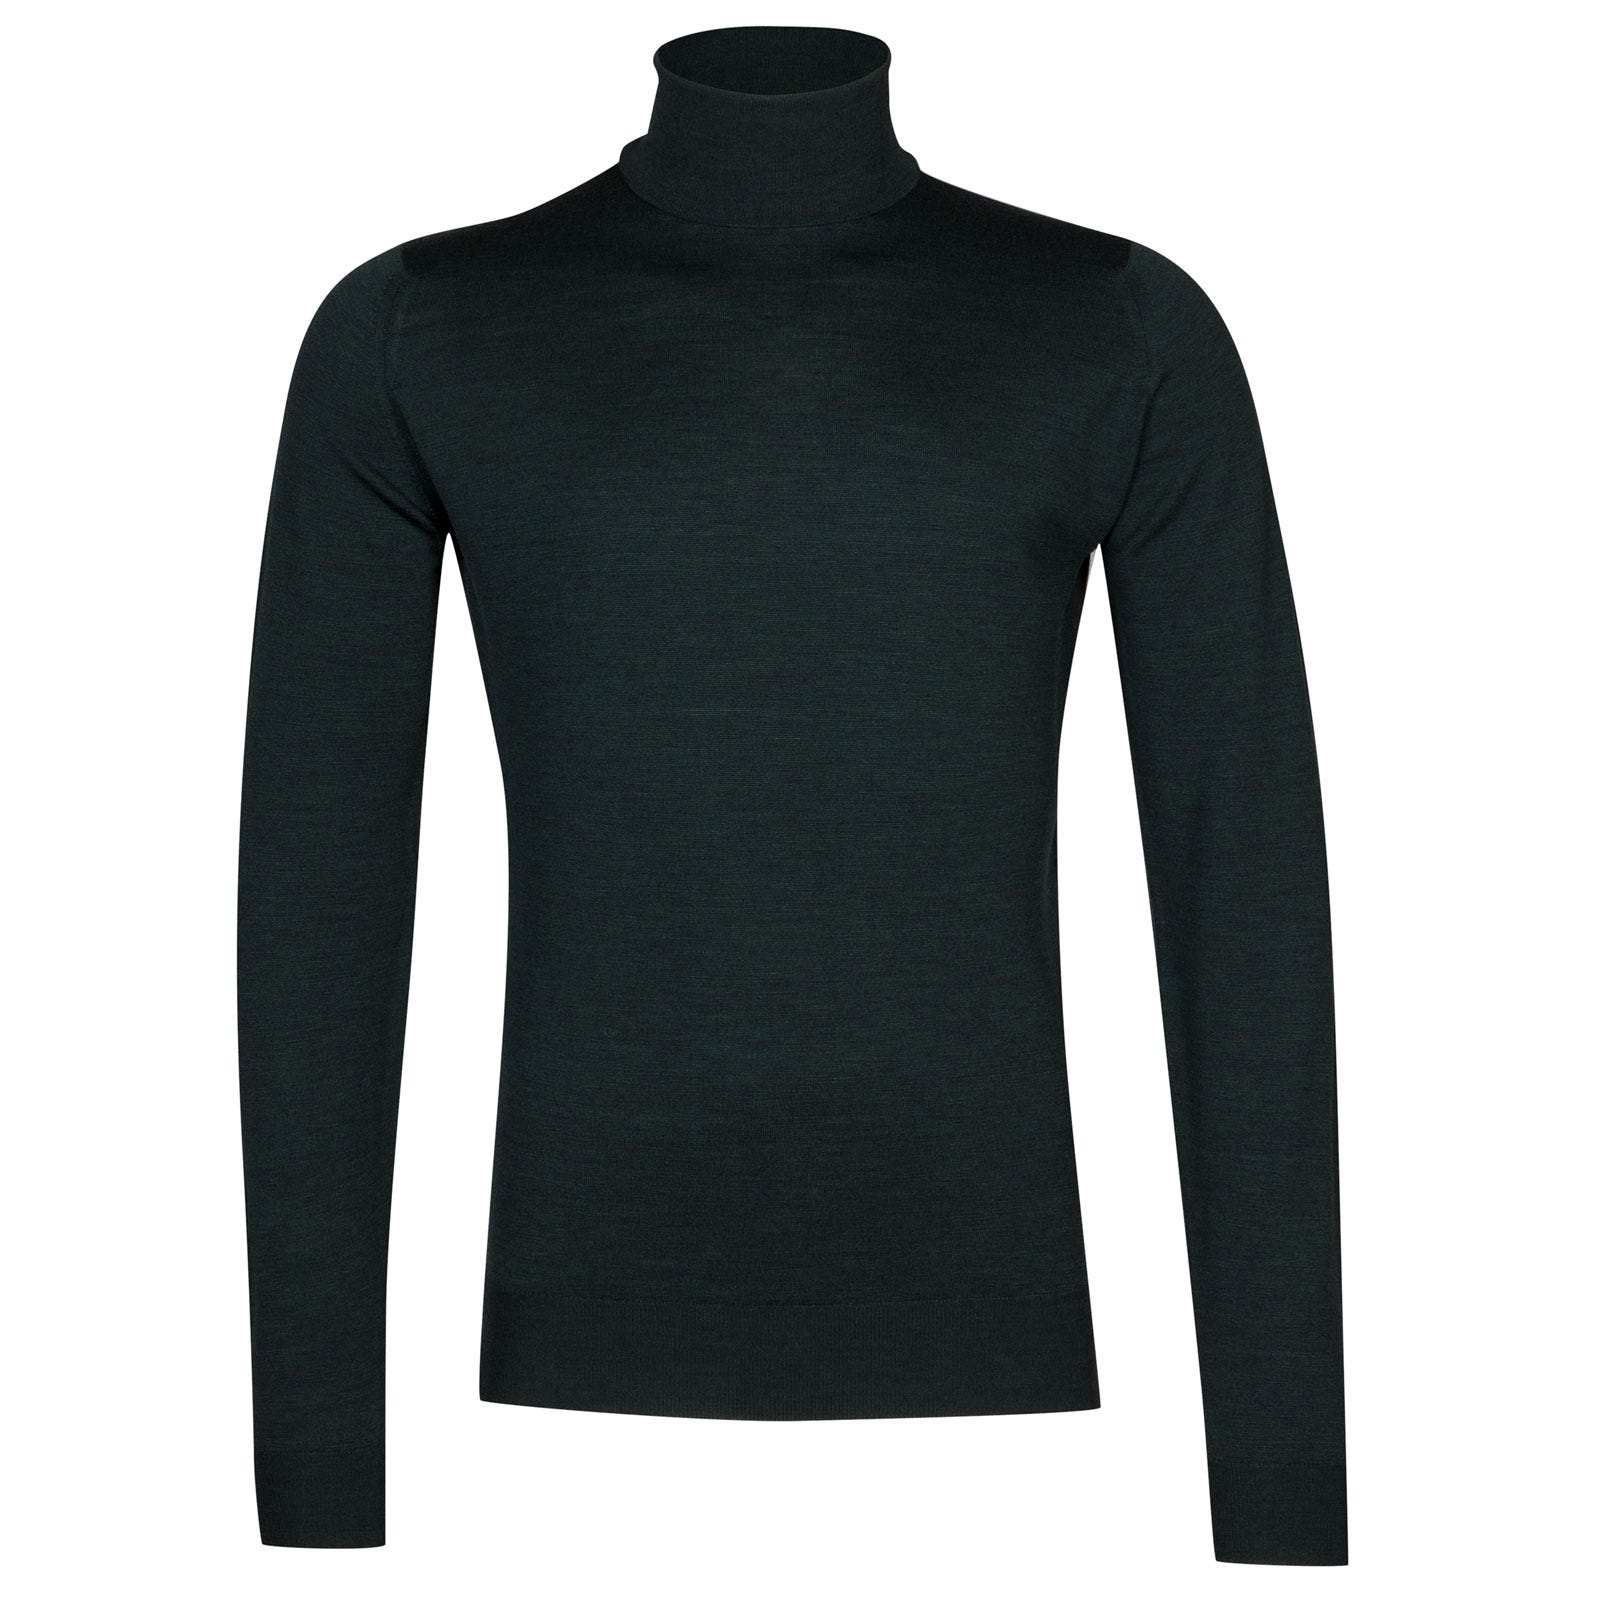 John Smedley cherwell Merino Wool Pullover in Racing Green-XL